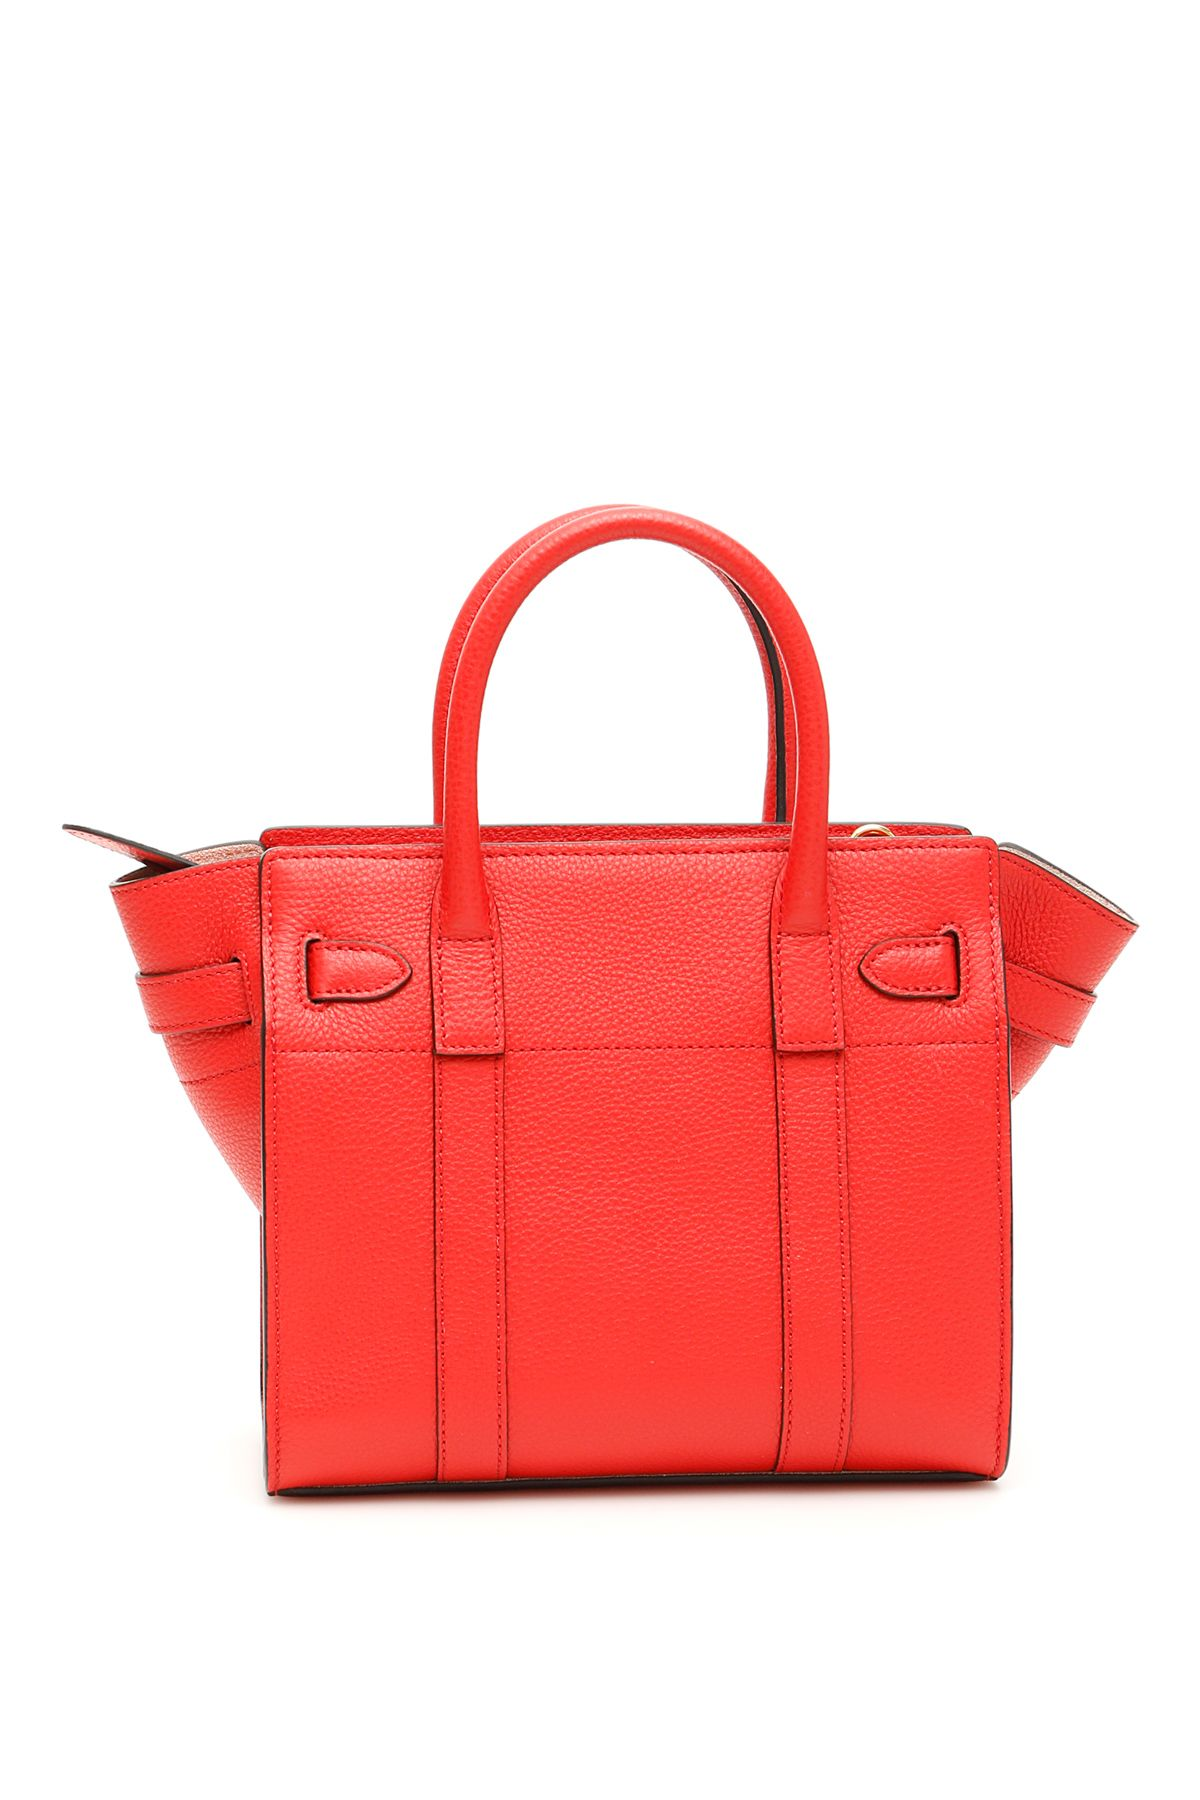 e4cbcf5510e6 Mulberry Mulberry Zipped Bayswater Mini Bag - IBISCUS RED